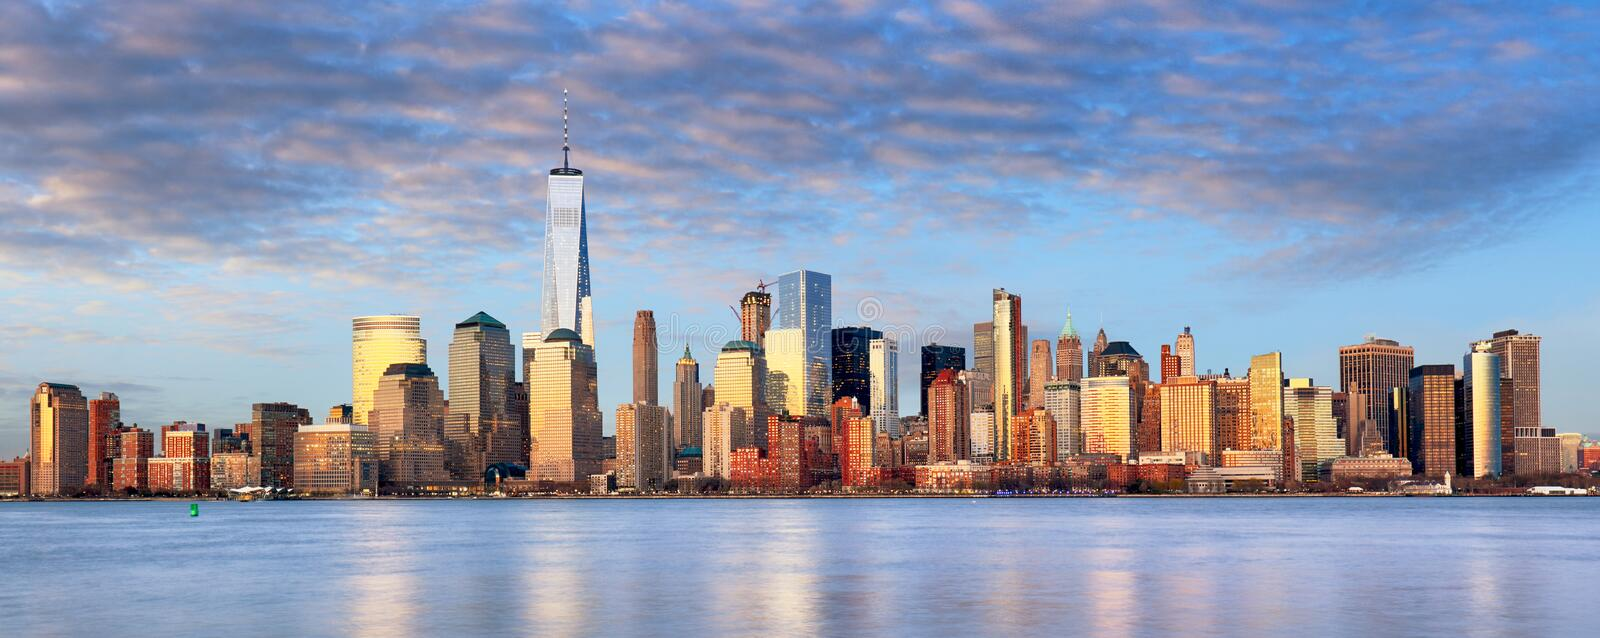 New York cityscape, USA stock photography